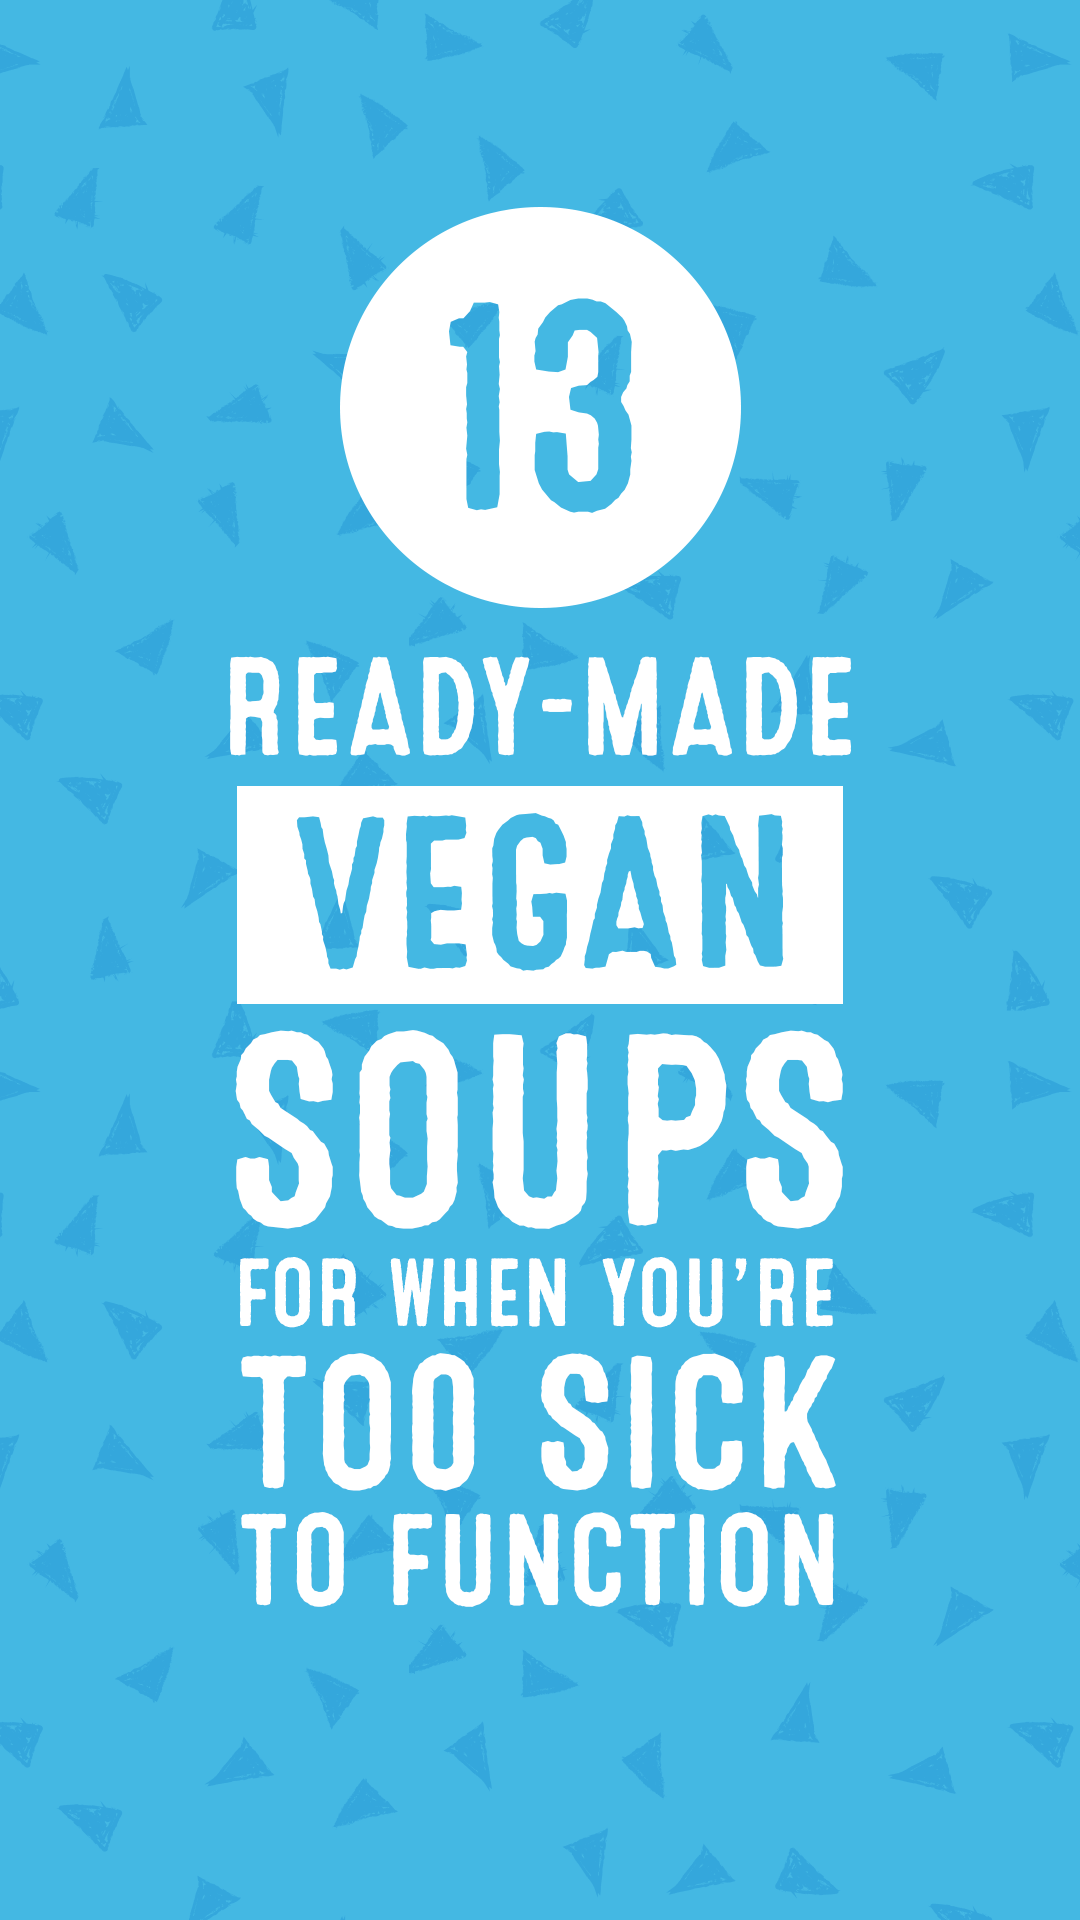 13 Ready-Made Vegan Soups for When You're Too Sick to Function